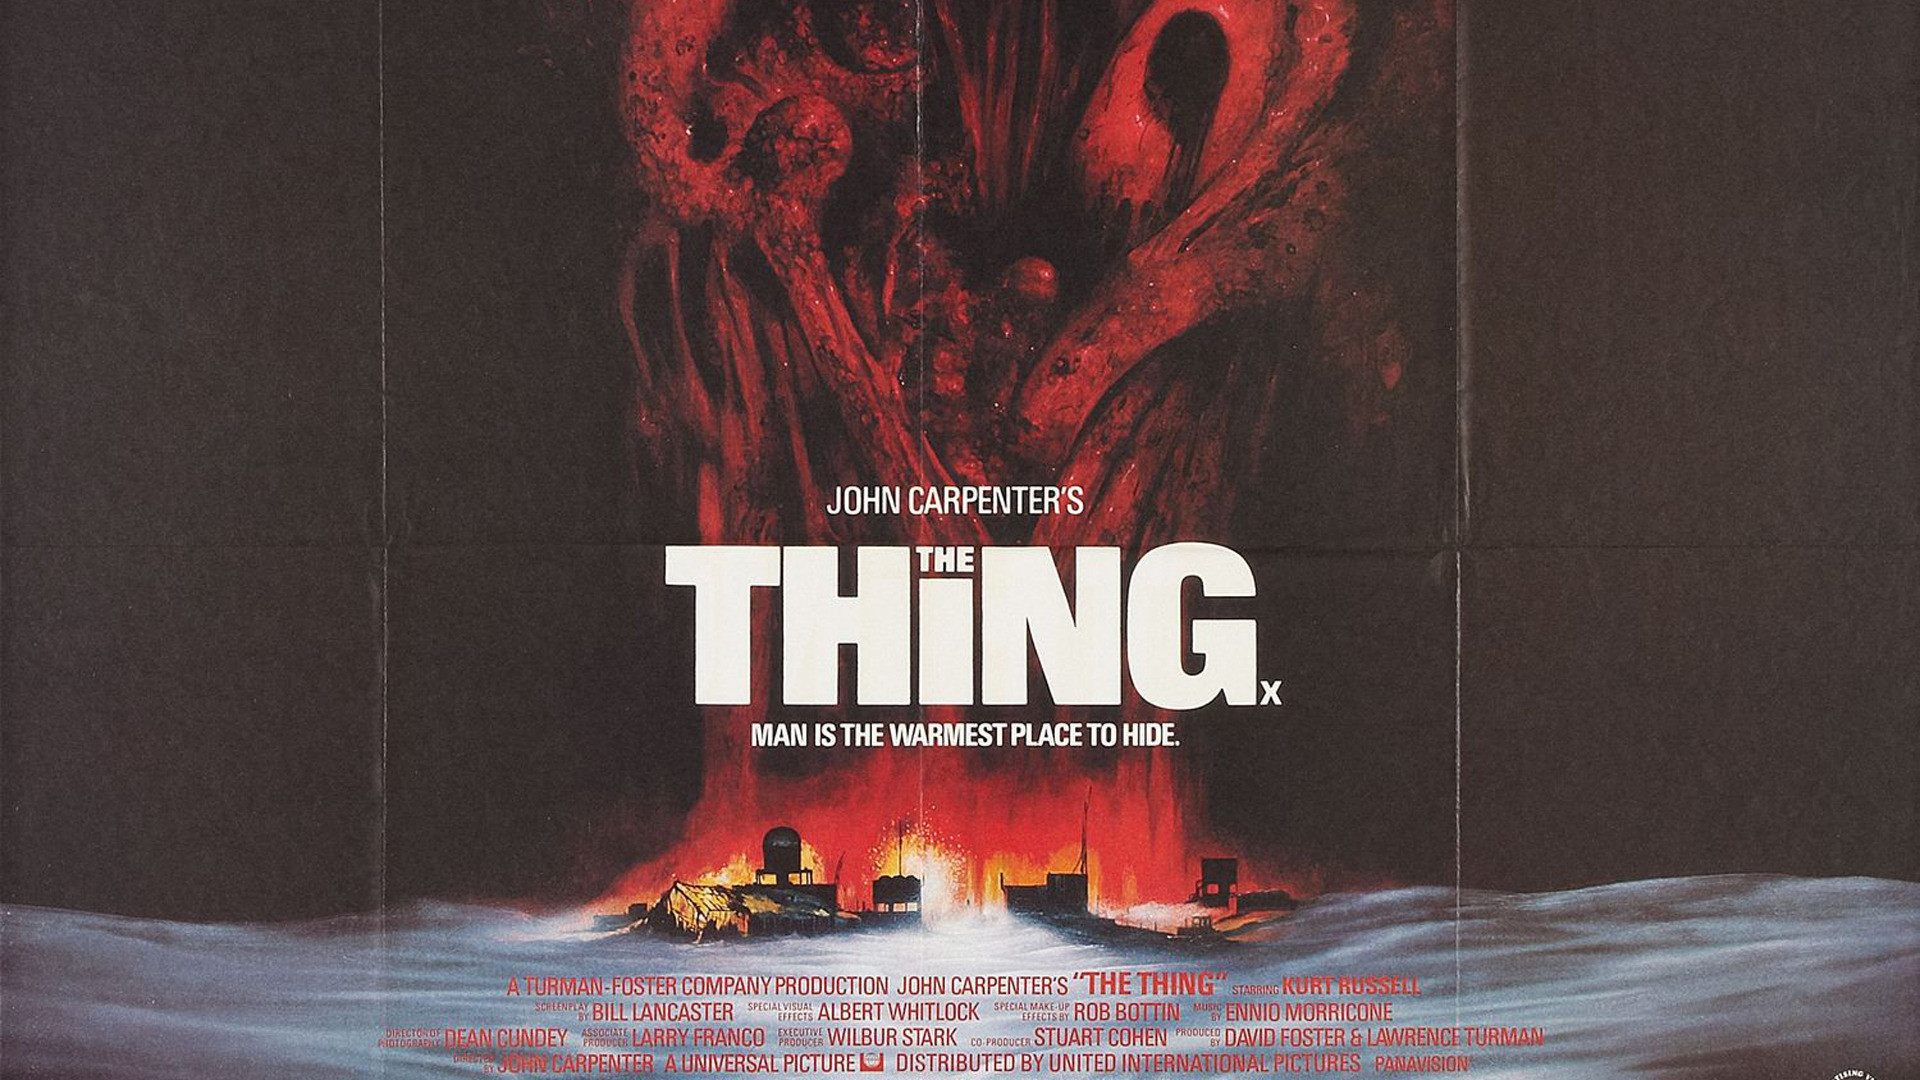 John Carpenter The Thing Movie #poster 1982 Horror film with nod to H.P.  Lovecraft's Cthulhu